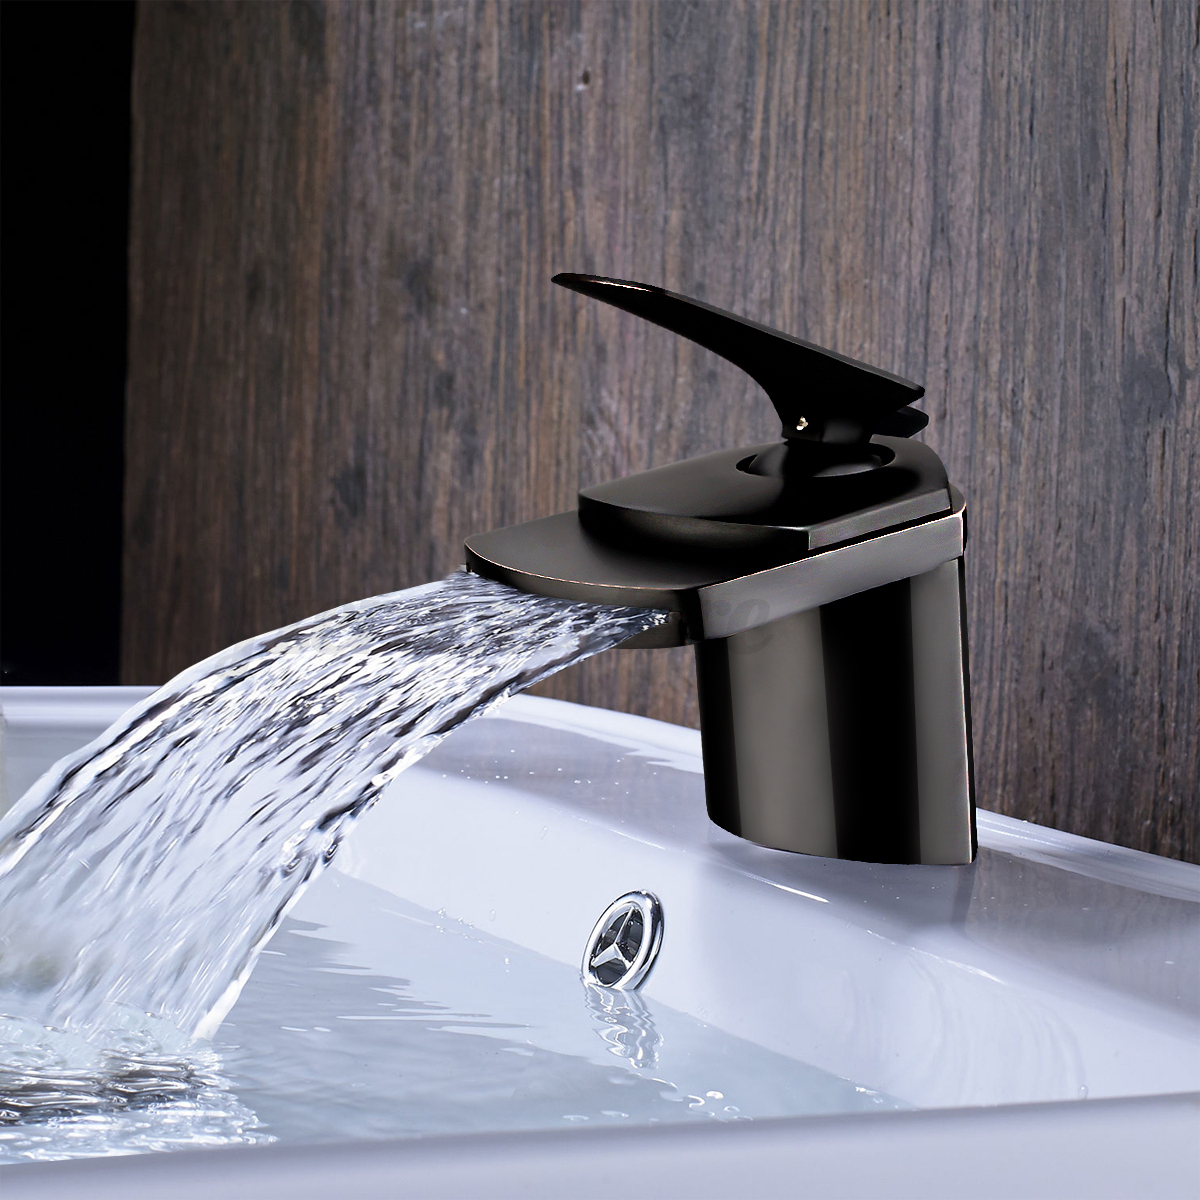 Bathroom/Kitchen Sink Vessel Faucet Oil Rubbed Bronze ...